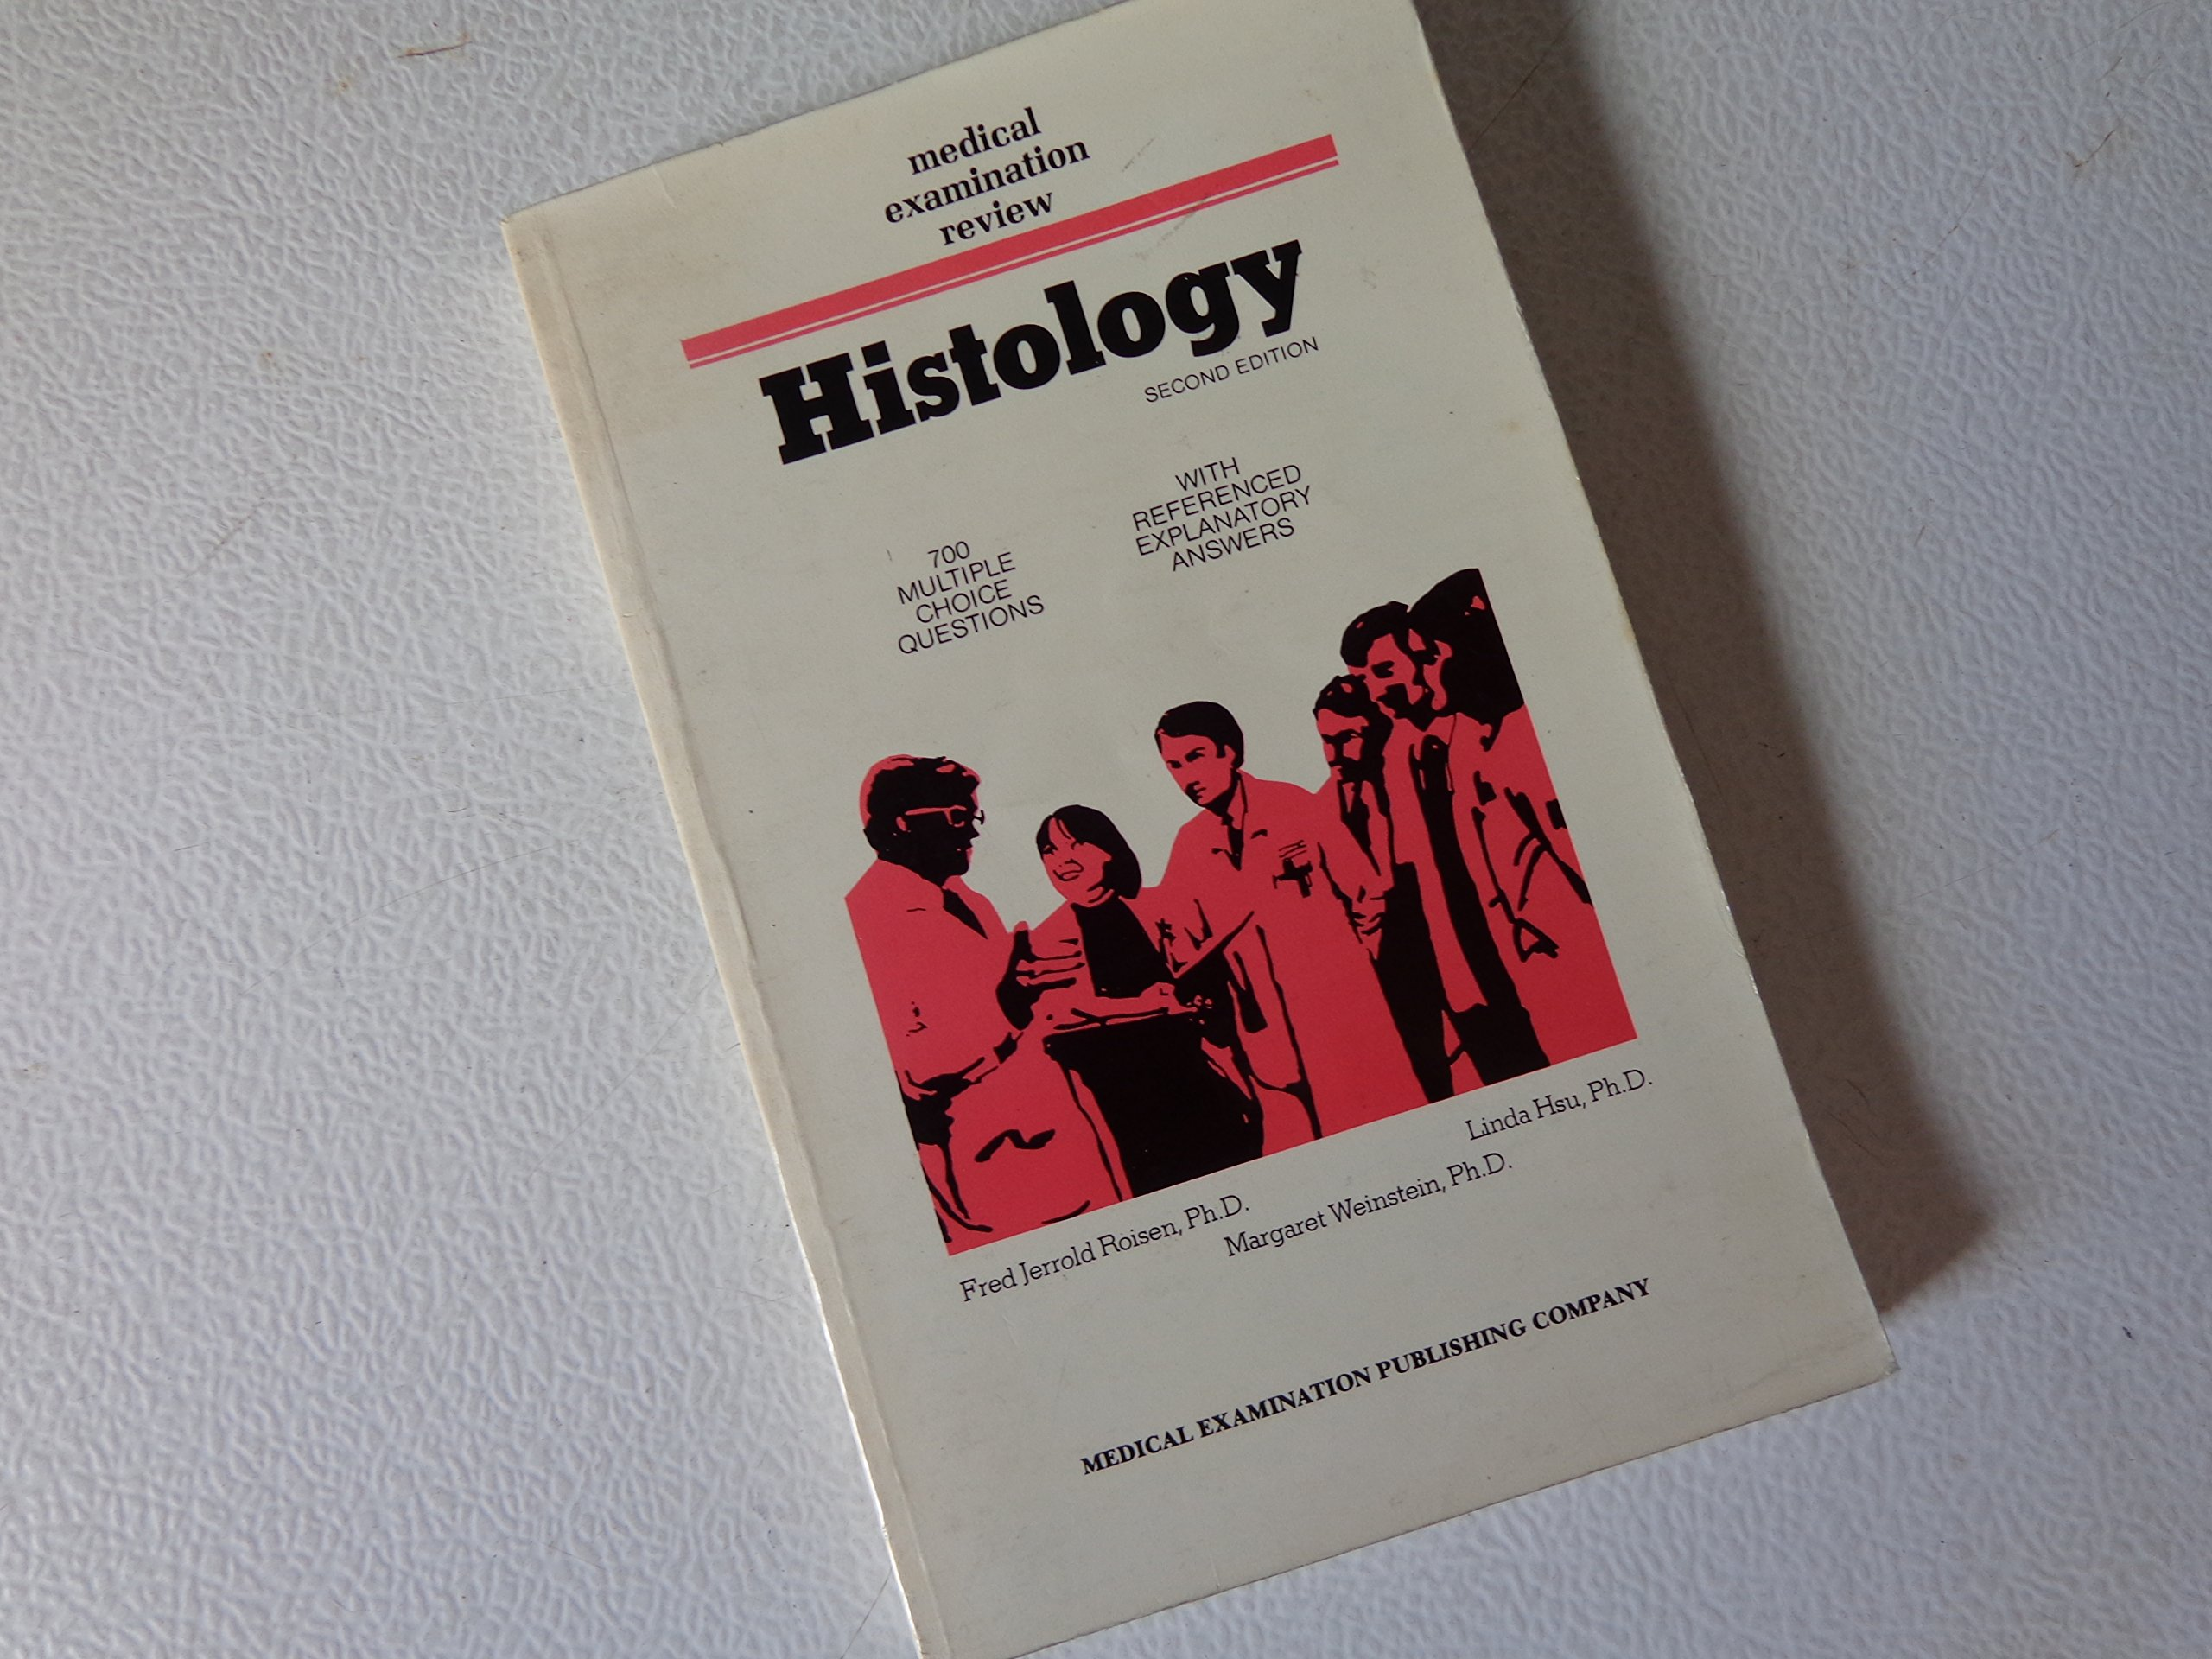 Histology review: 2, 000 multiple choice questions and